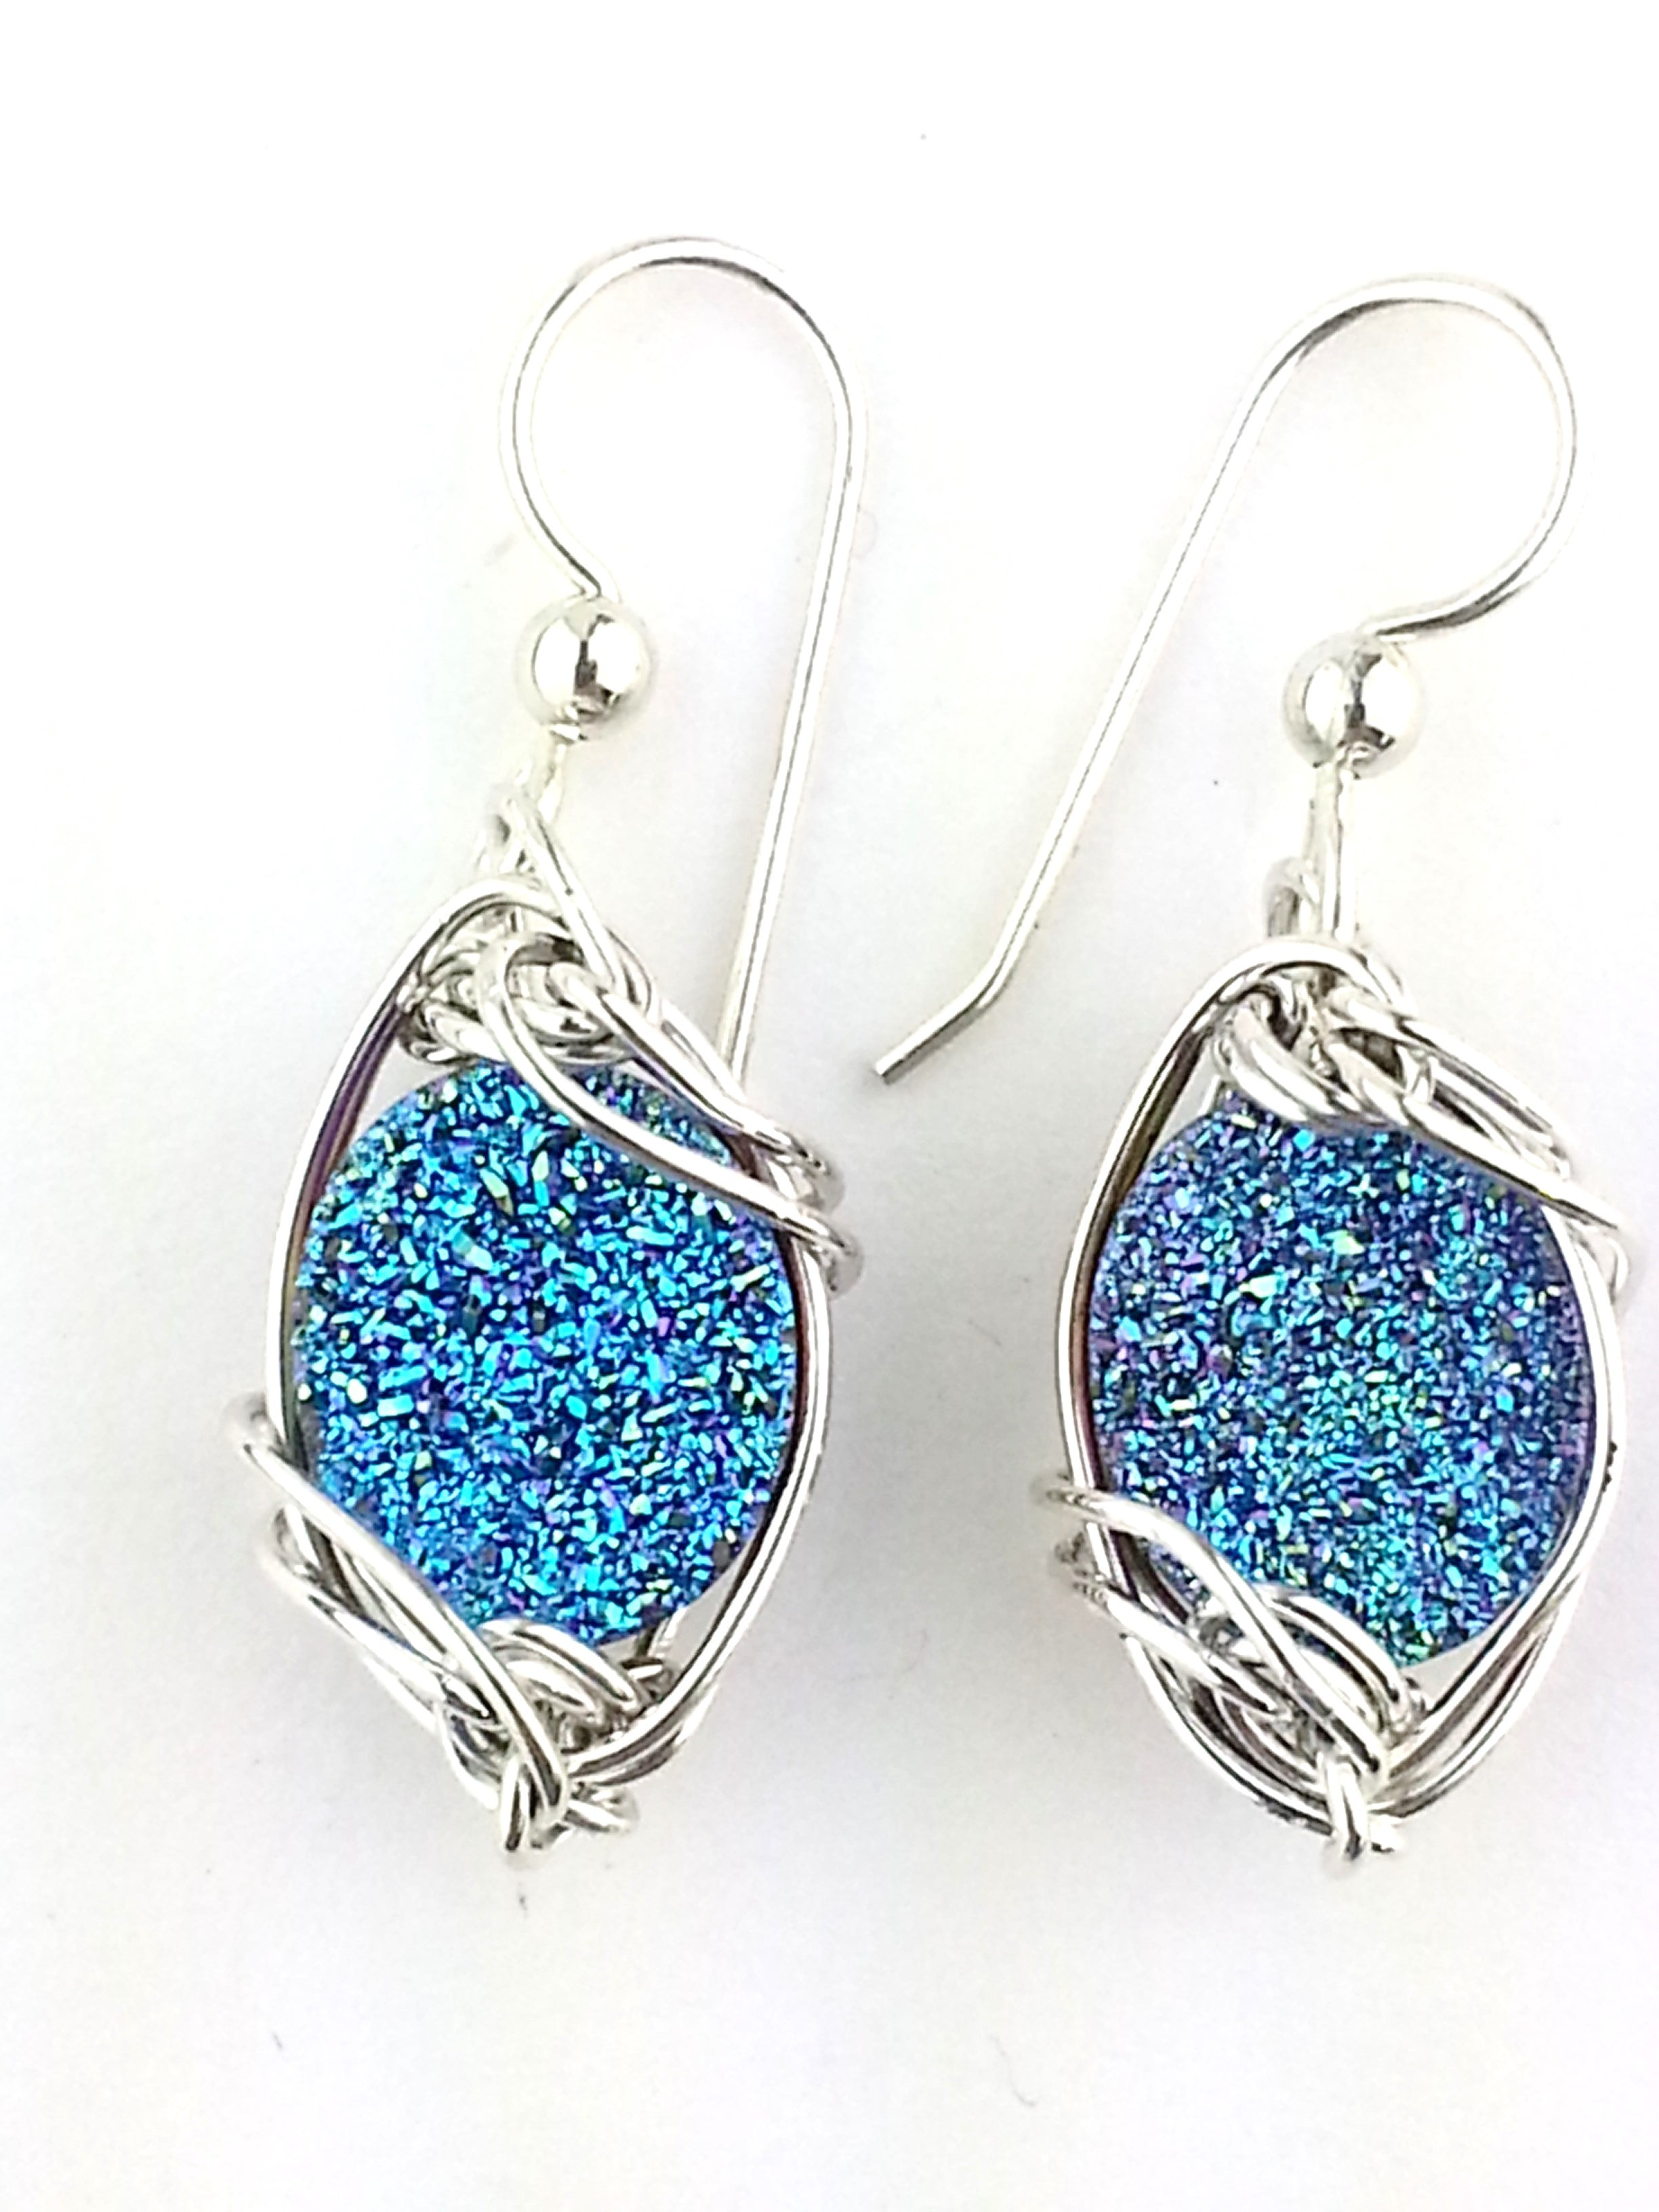 Peacock Druzy Quartz Earrings